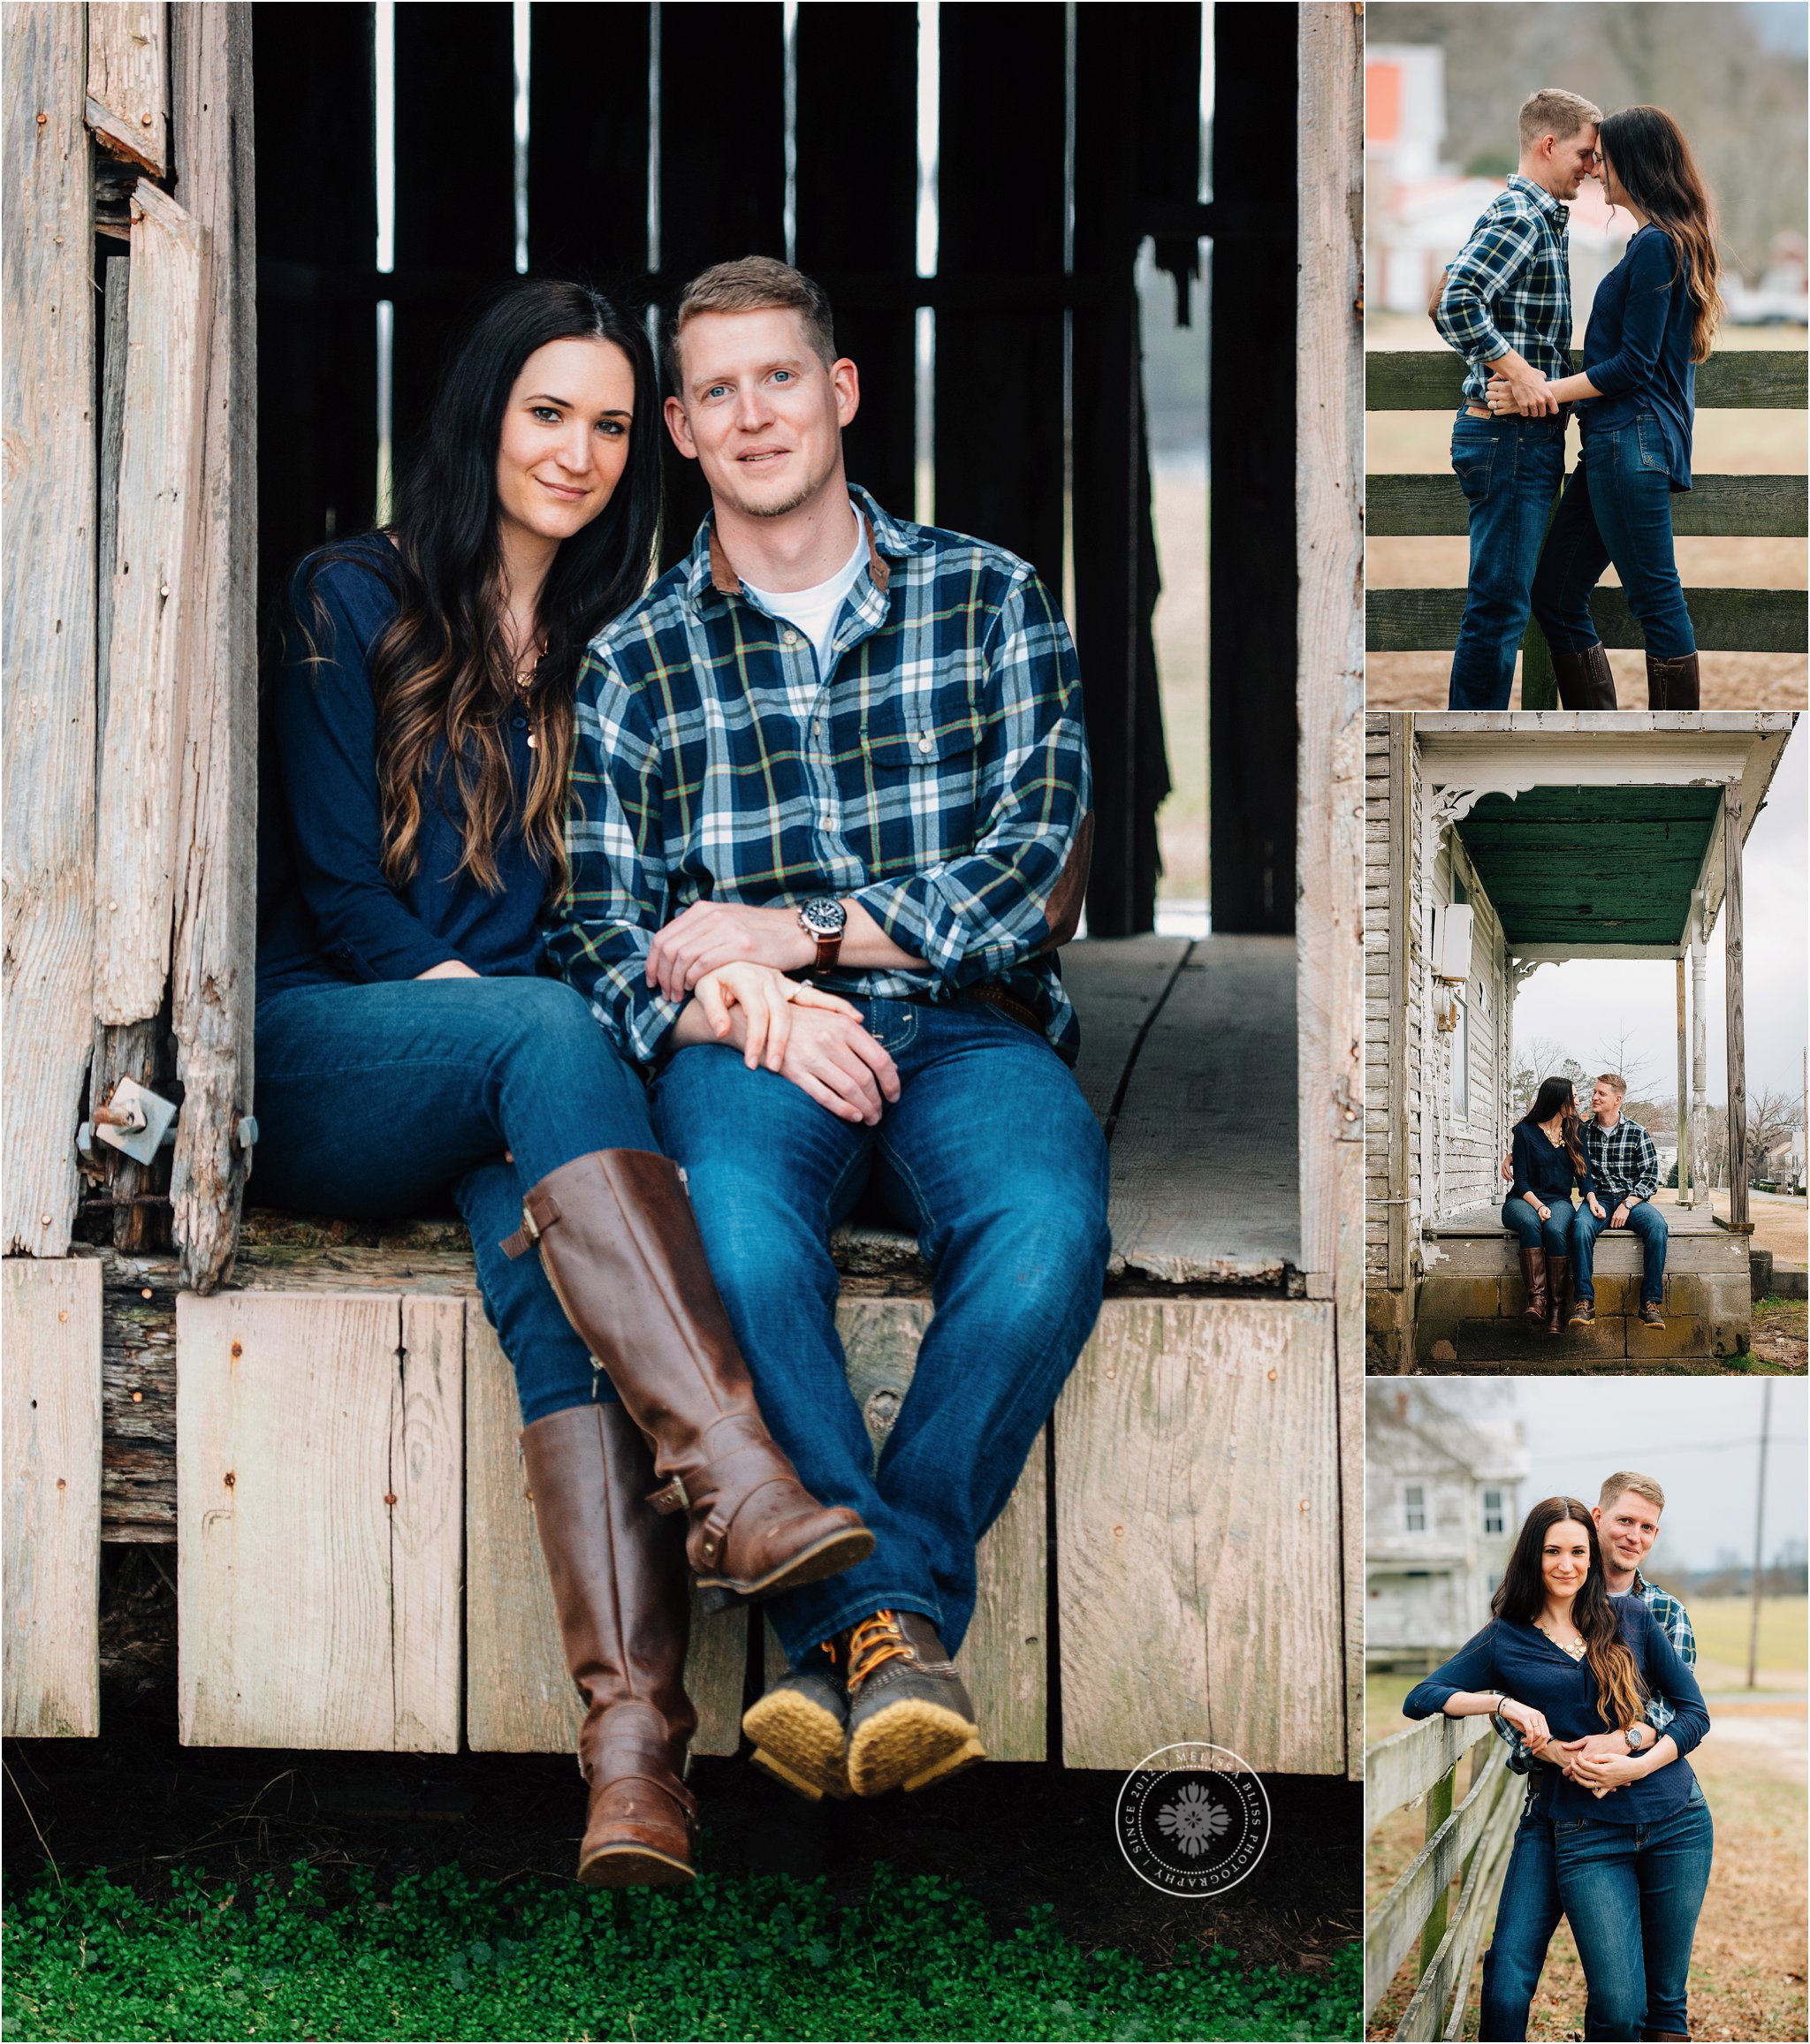 engagement-session-ideas-rustic-barns-smithfield-portraits-melissa-bliss-photography-norfolk-virginia-beach-chesapeake-photographer